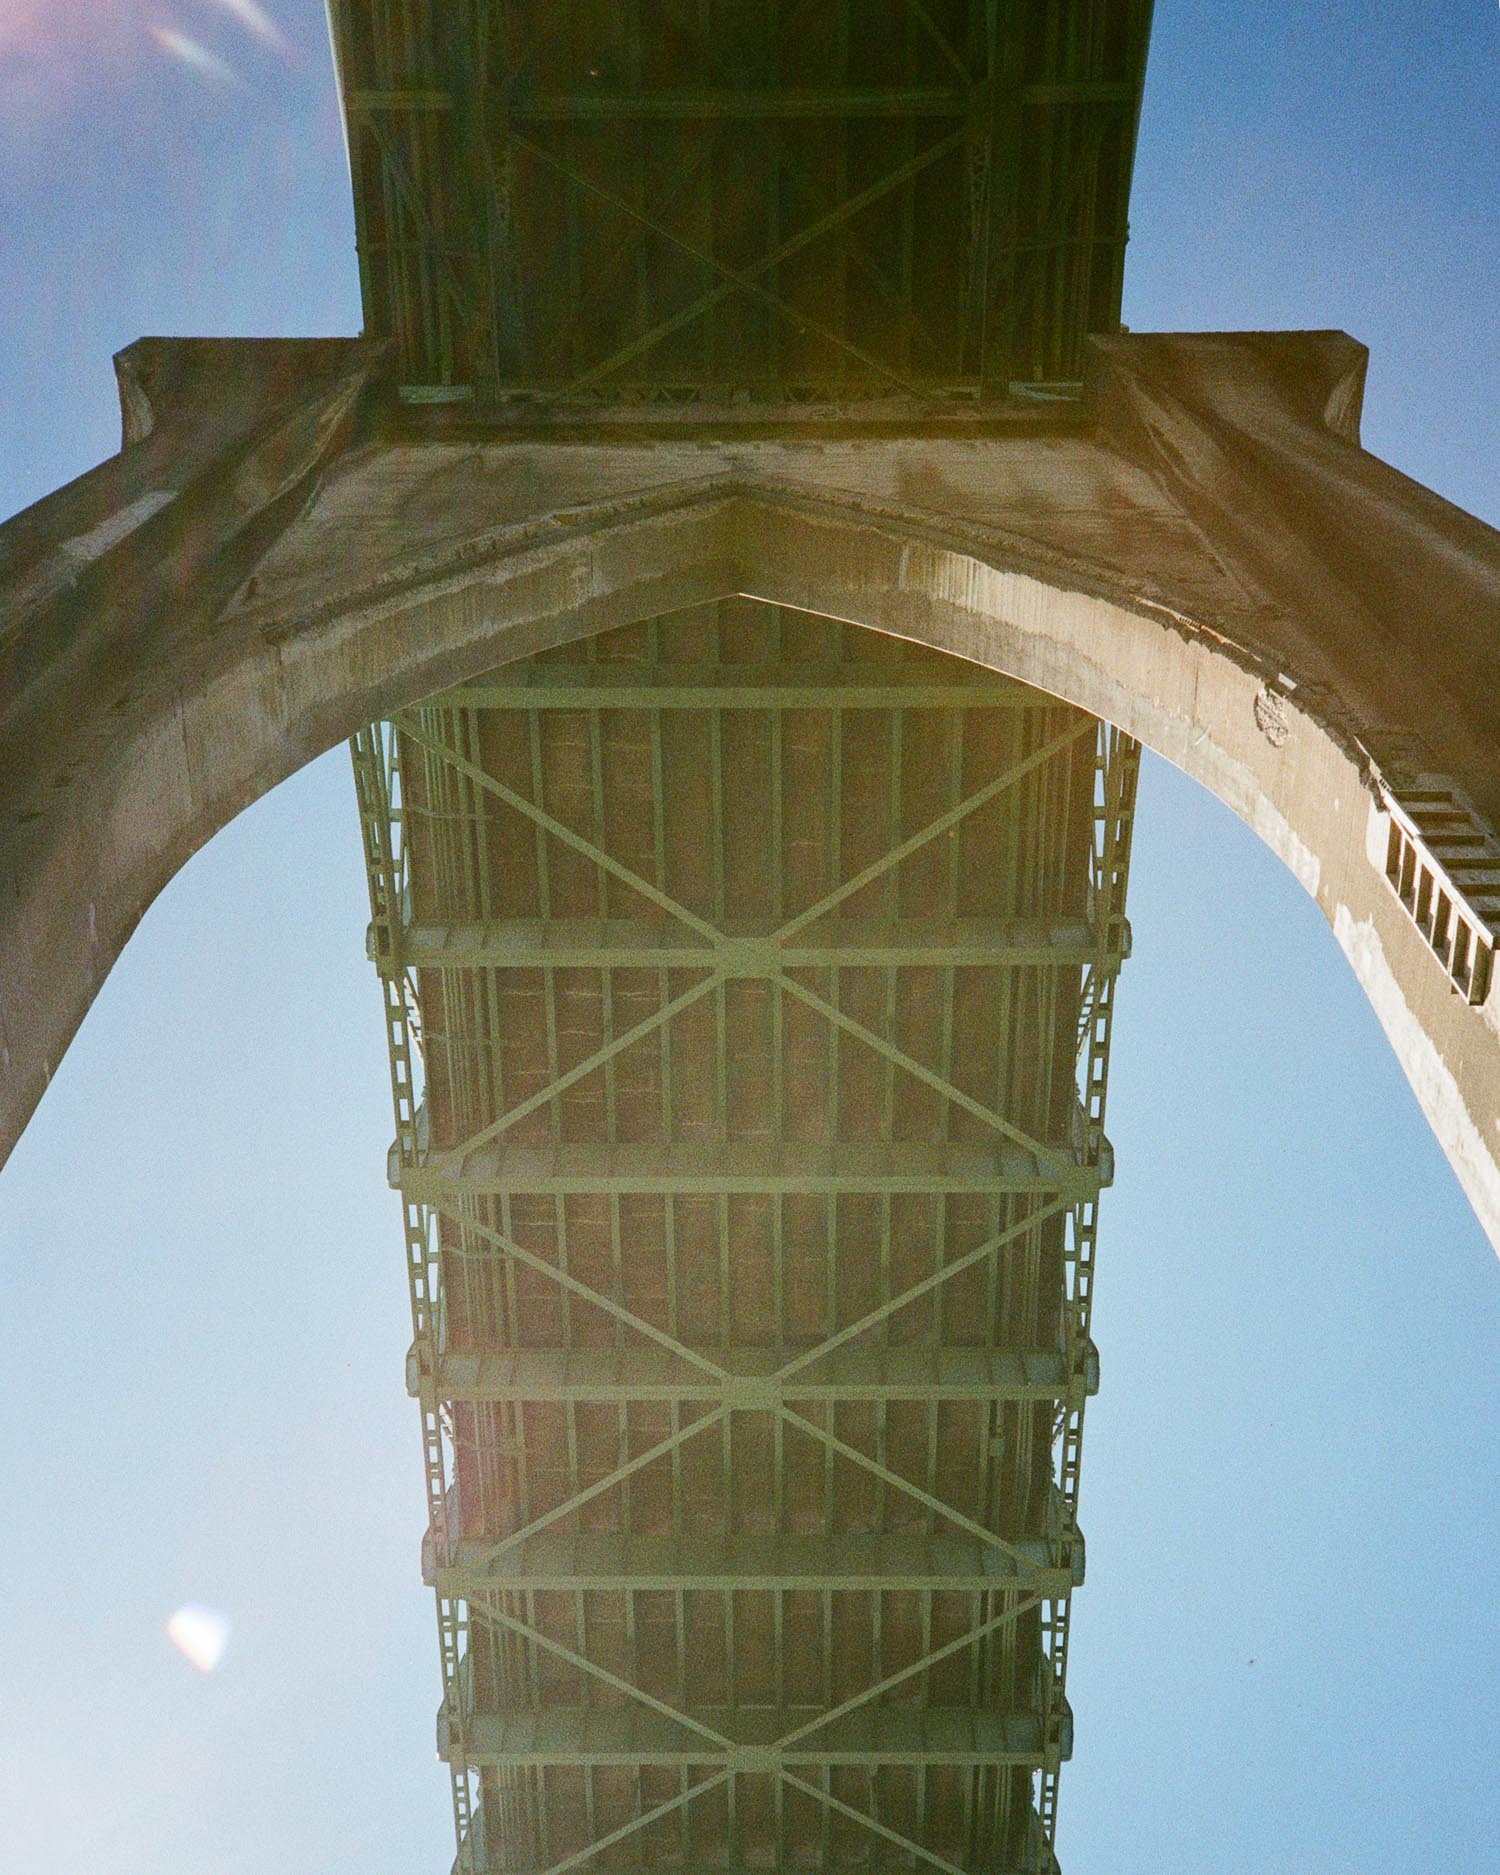 Photo of the underside of St. Johns Bridge from Cathedral Park, Portland, OR